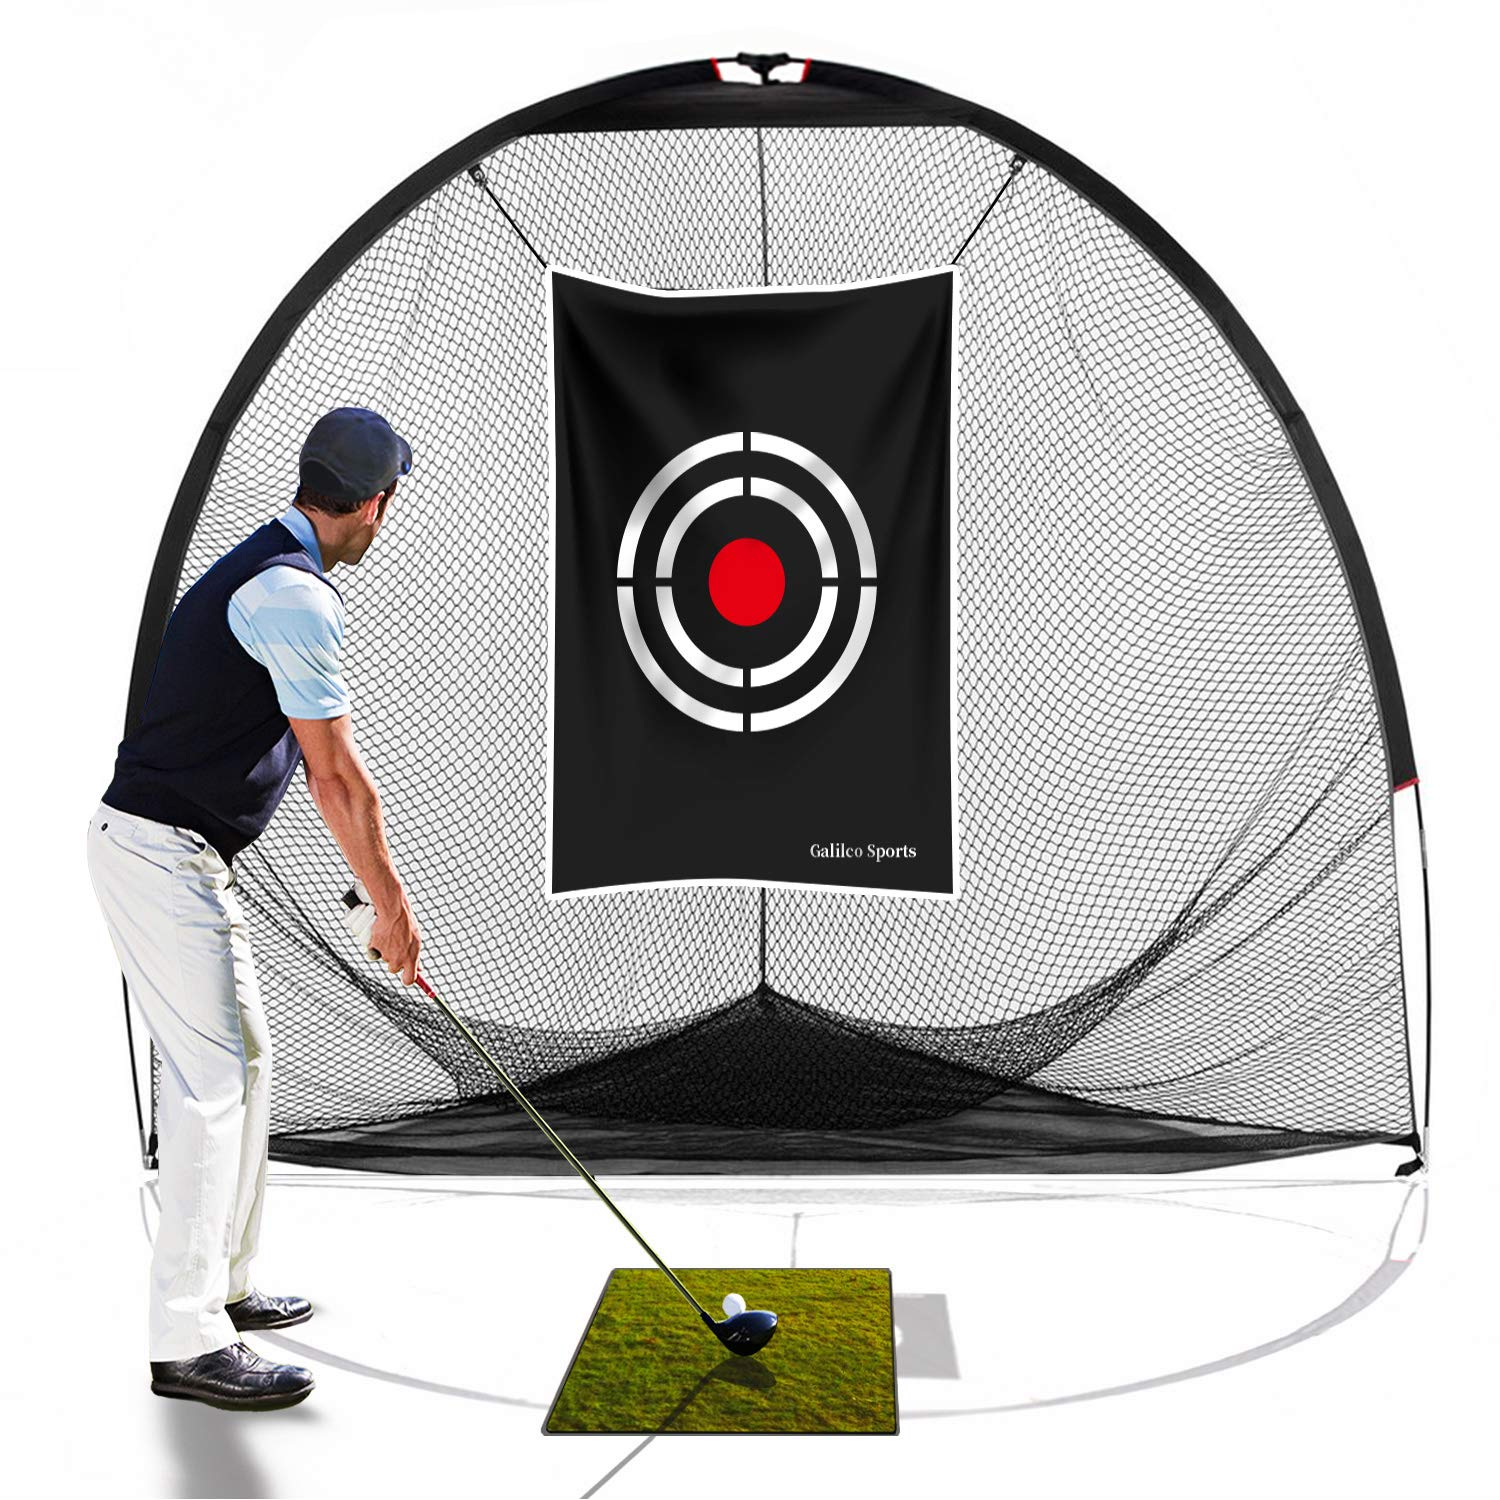 Galileo Golf Nets Golf Practice Net Hitting Netting for Backyard Portable Driving Range Golf Cage Indoor Golf Net Training Aids with Target 8'x7'x7' by GALILEO